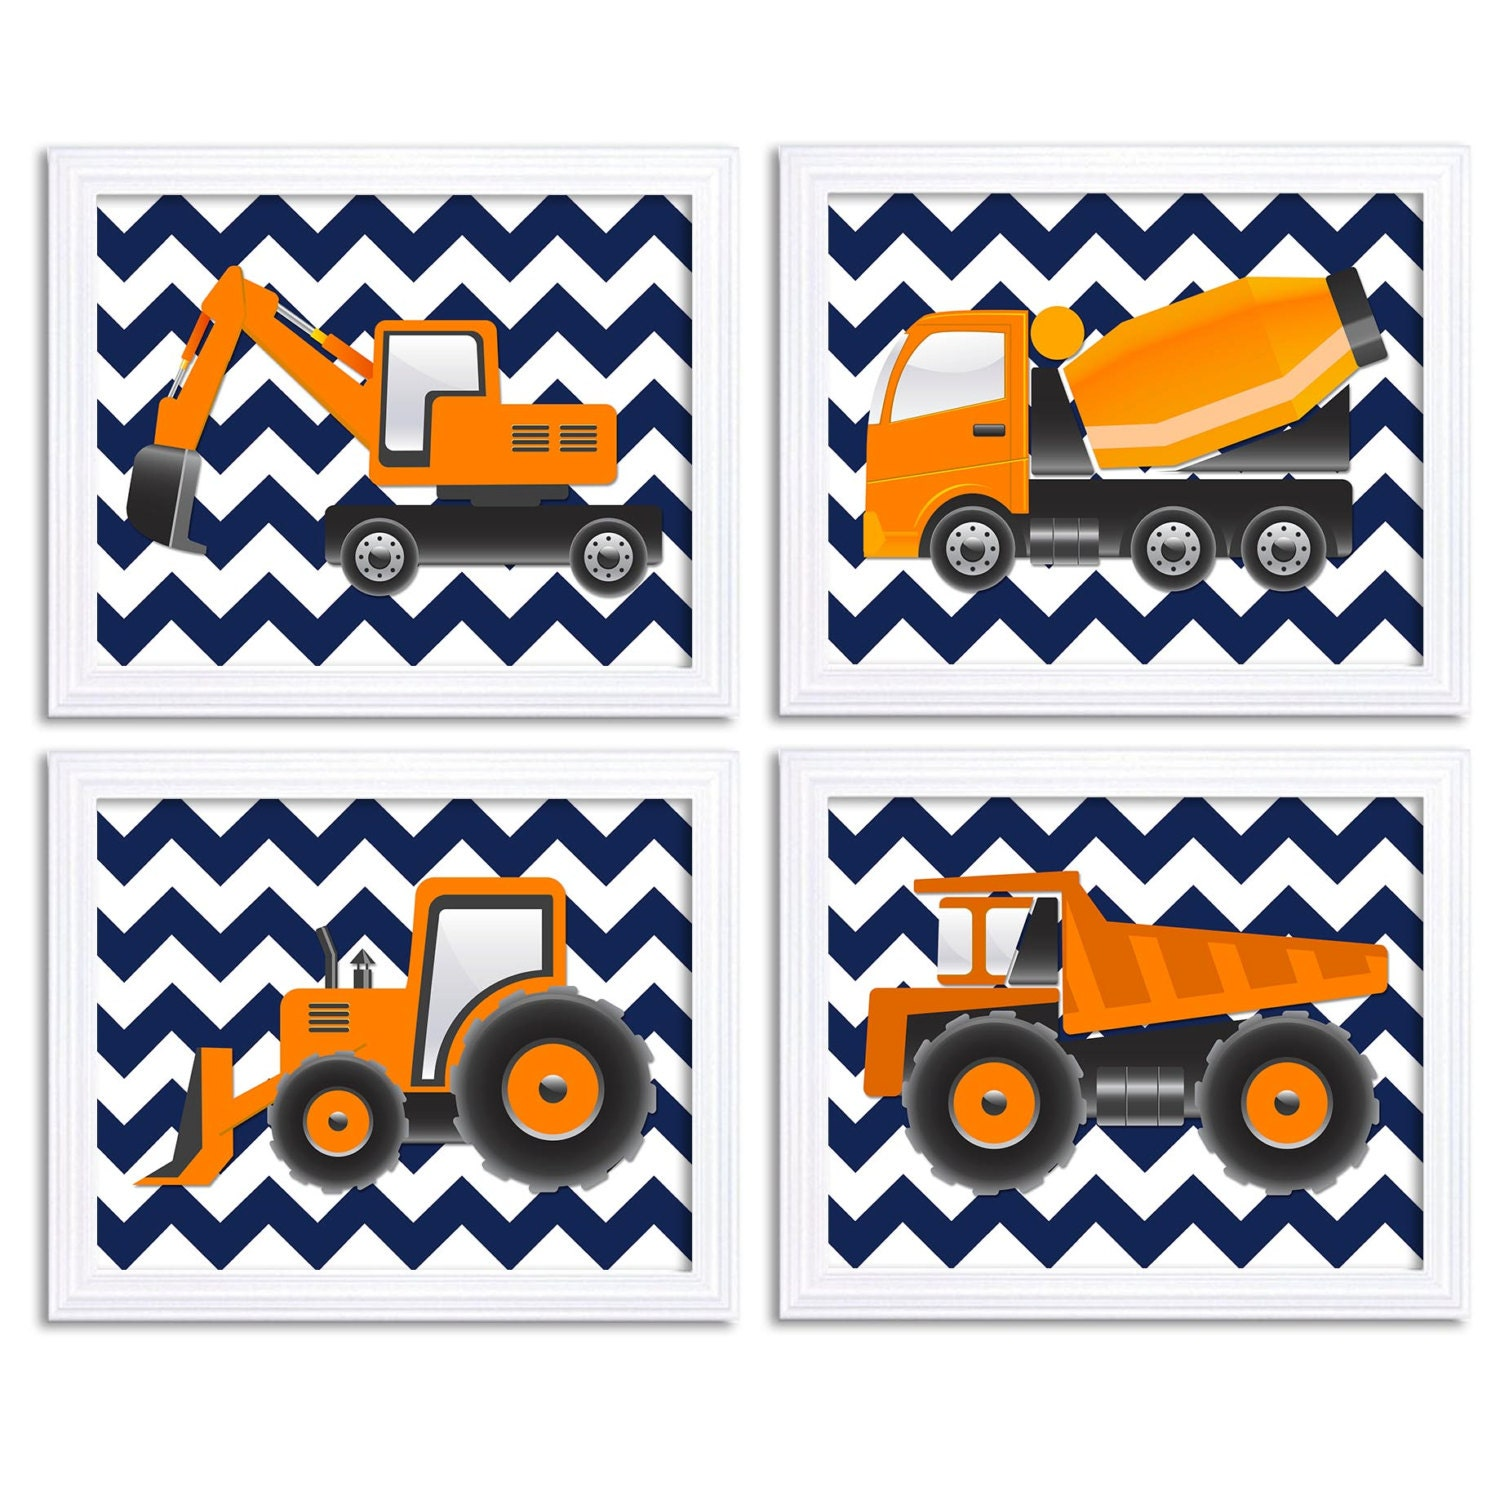 Transportation Construction Vehicles Heavy Machinery Art Set of 4 Print Boy Nursery Wall Decor Navy